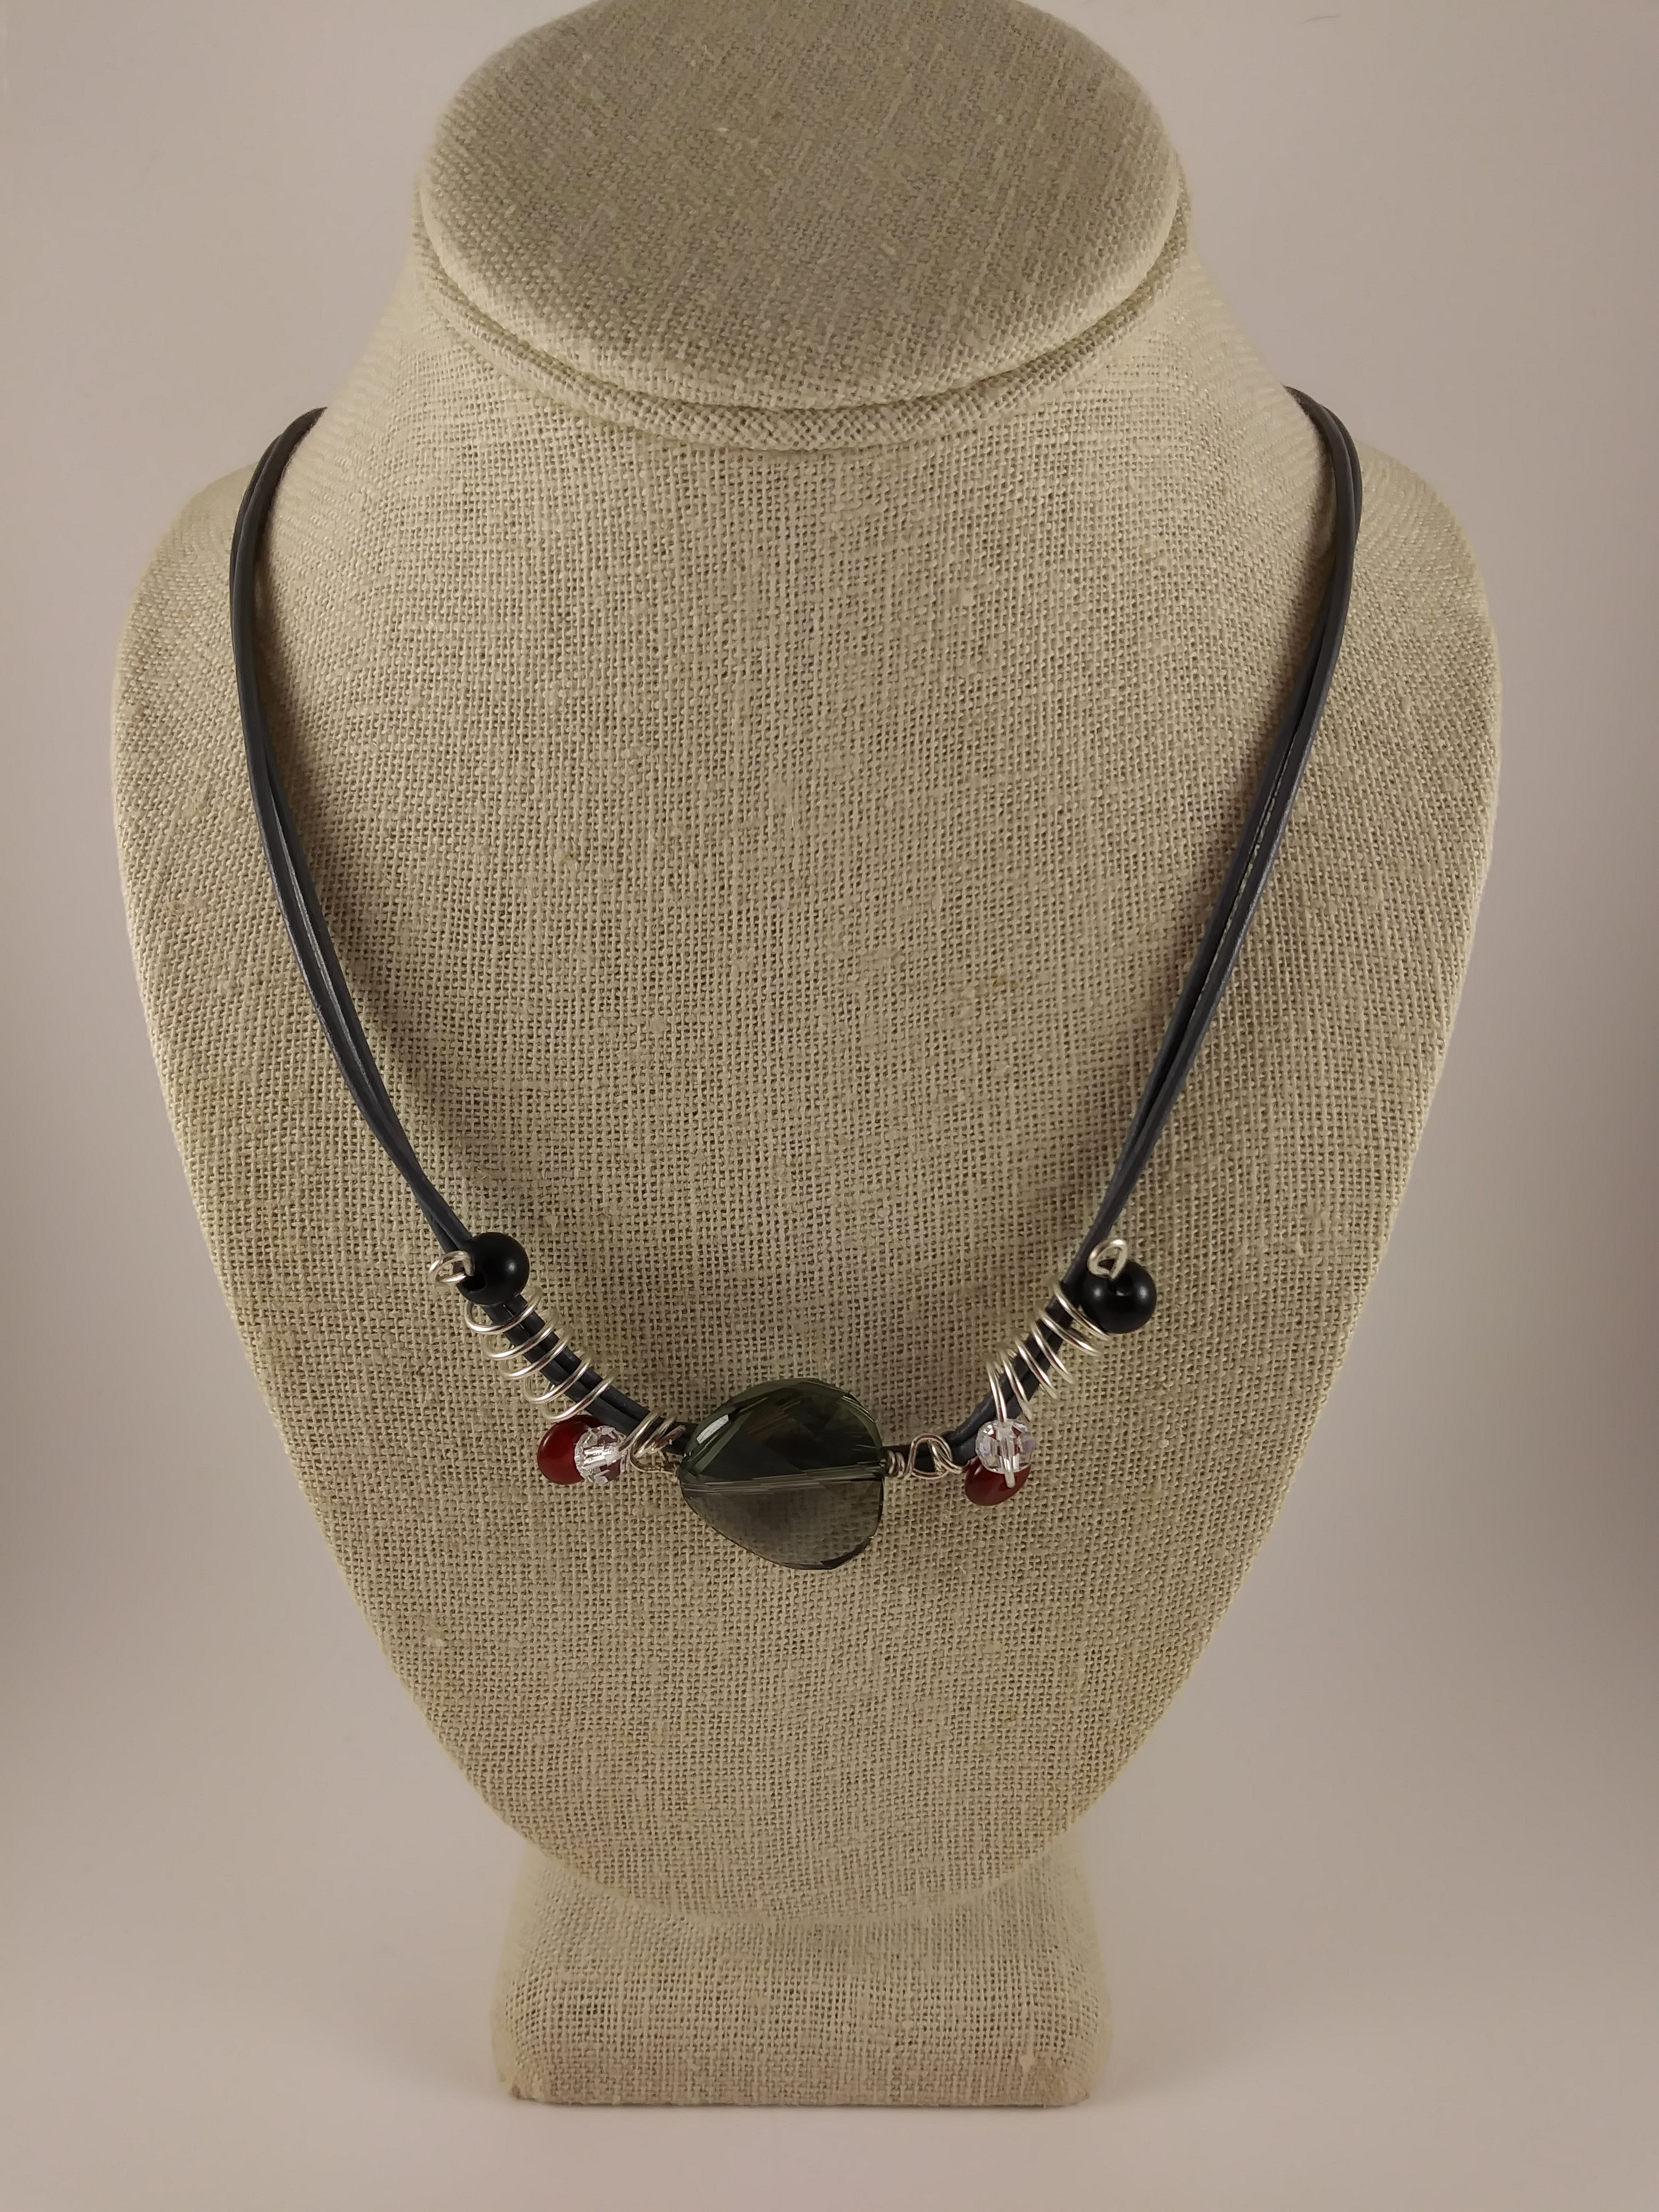 """Tunnel of Love"" necklace"